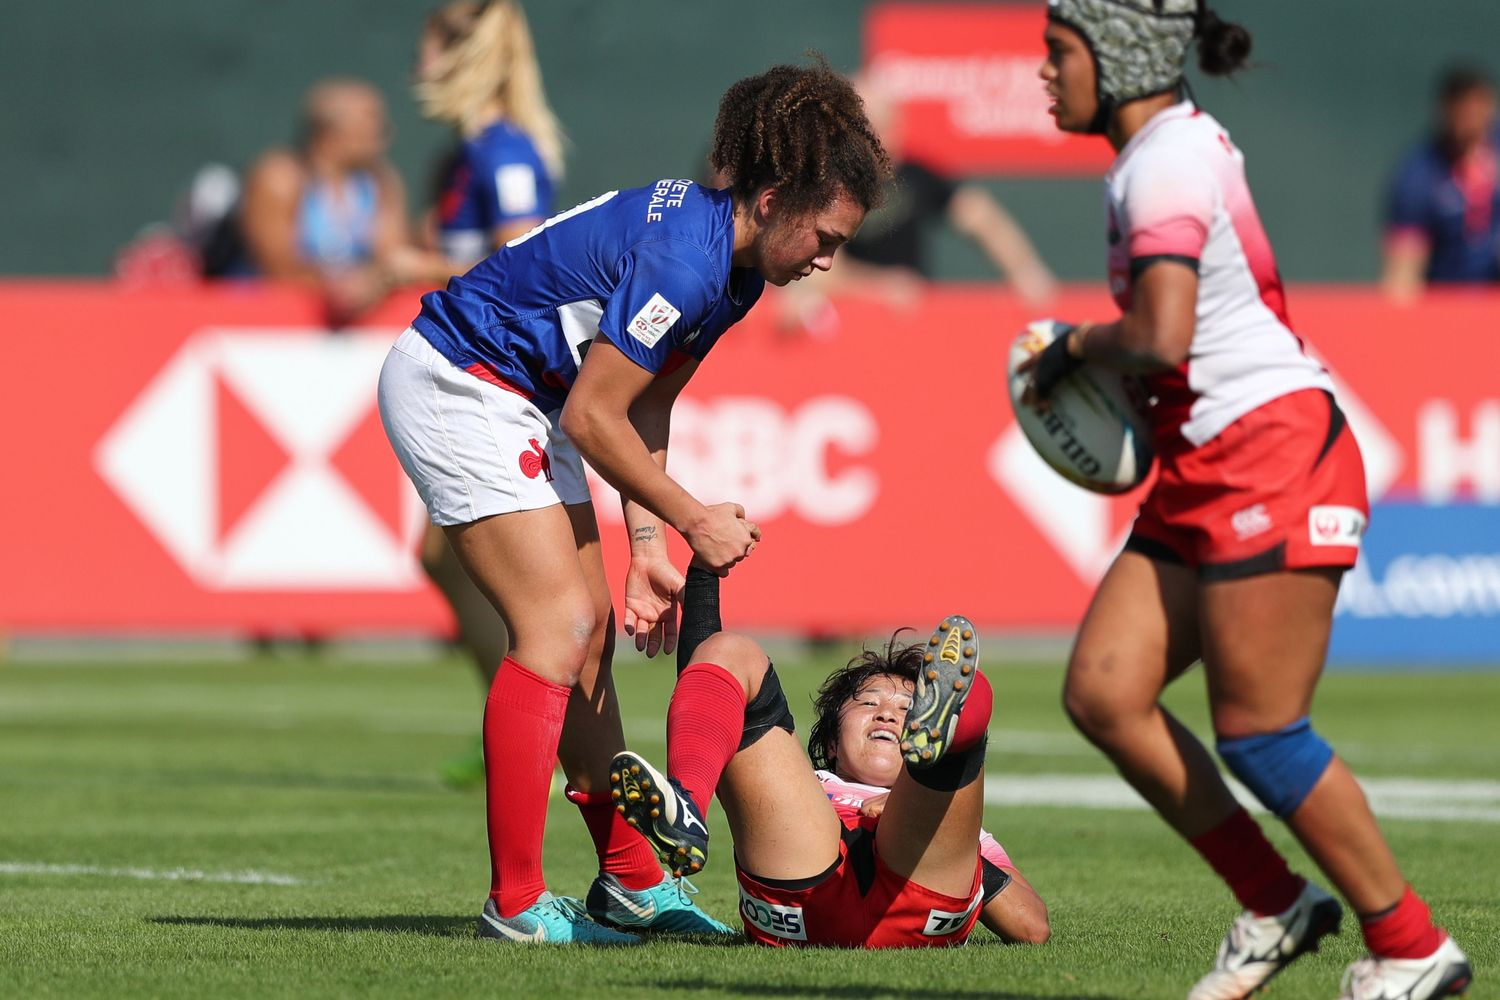 Emirates Airline Dubai Rugby Sevens 2019 - Women's